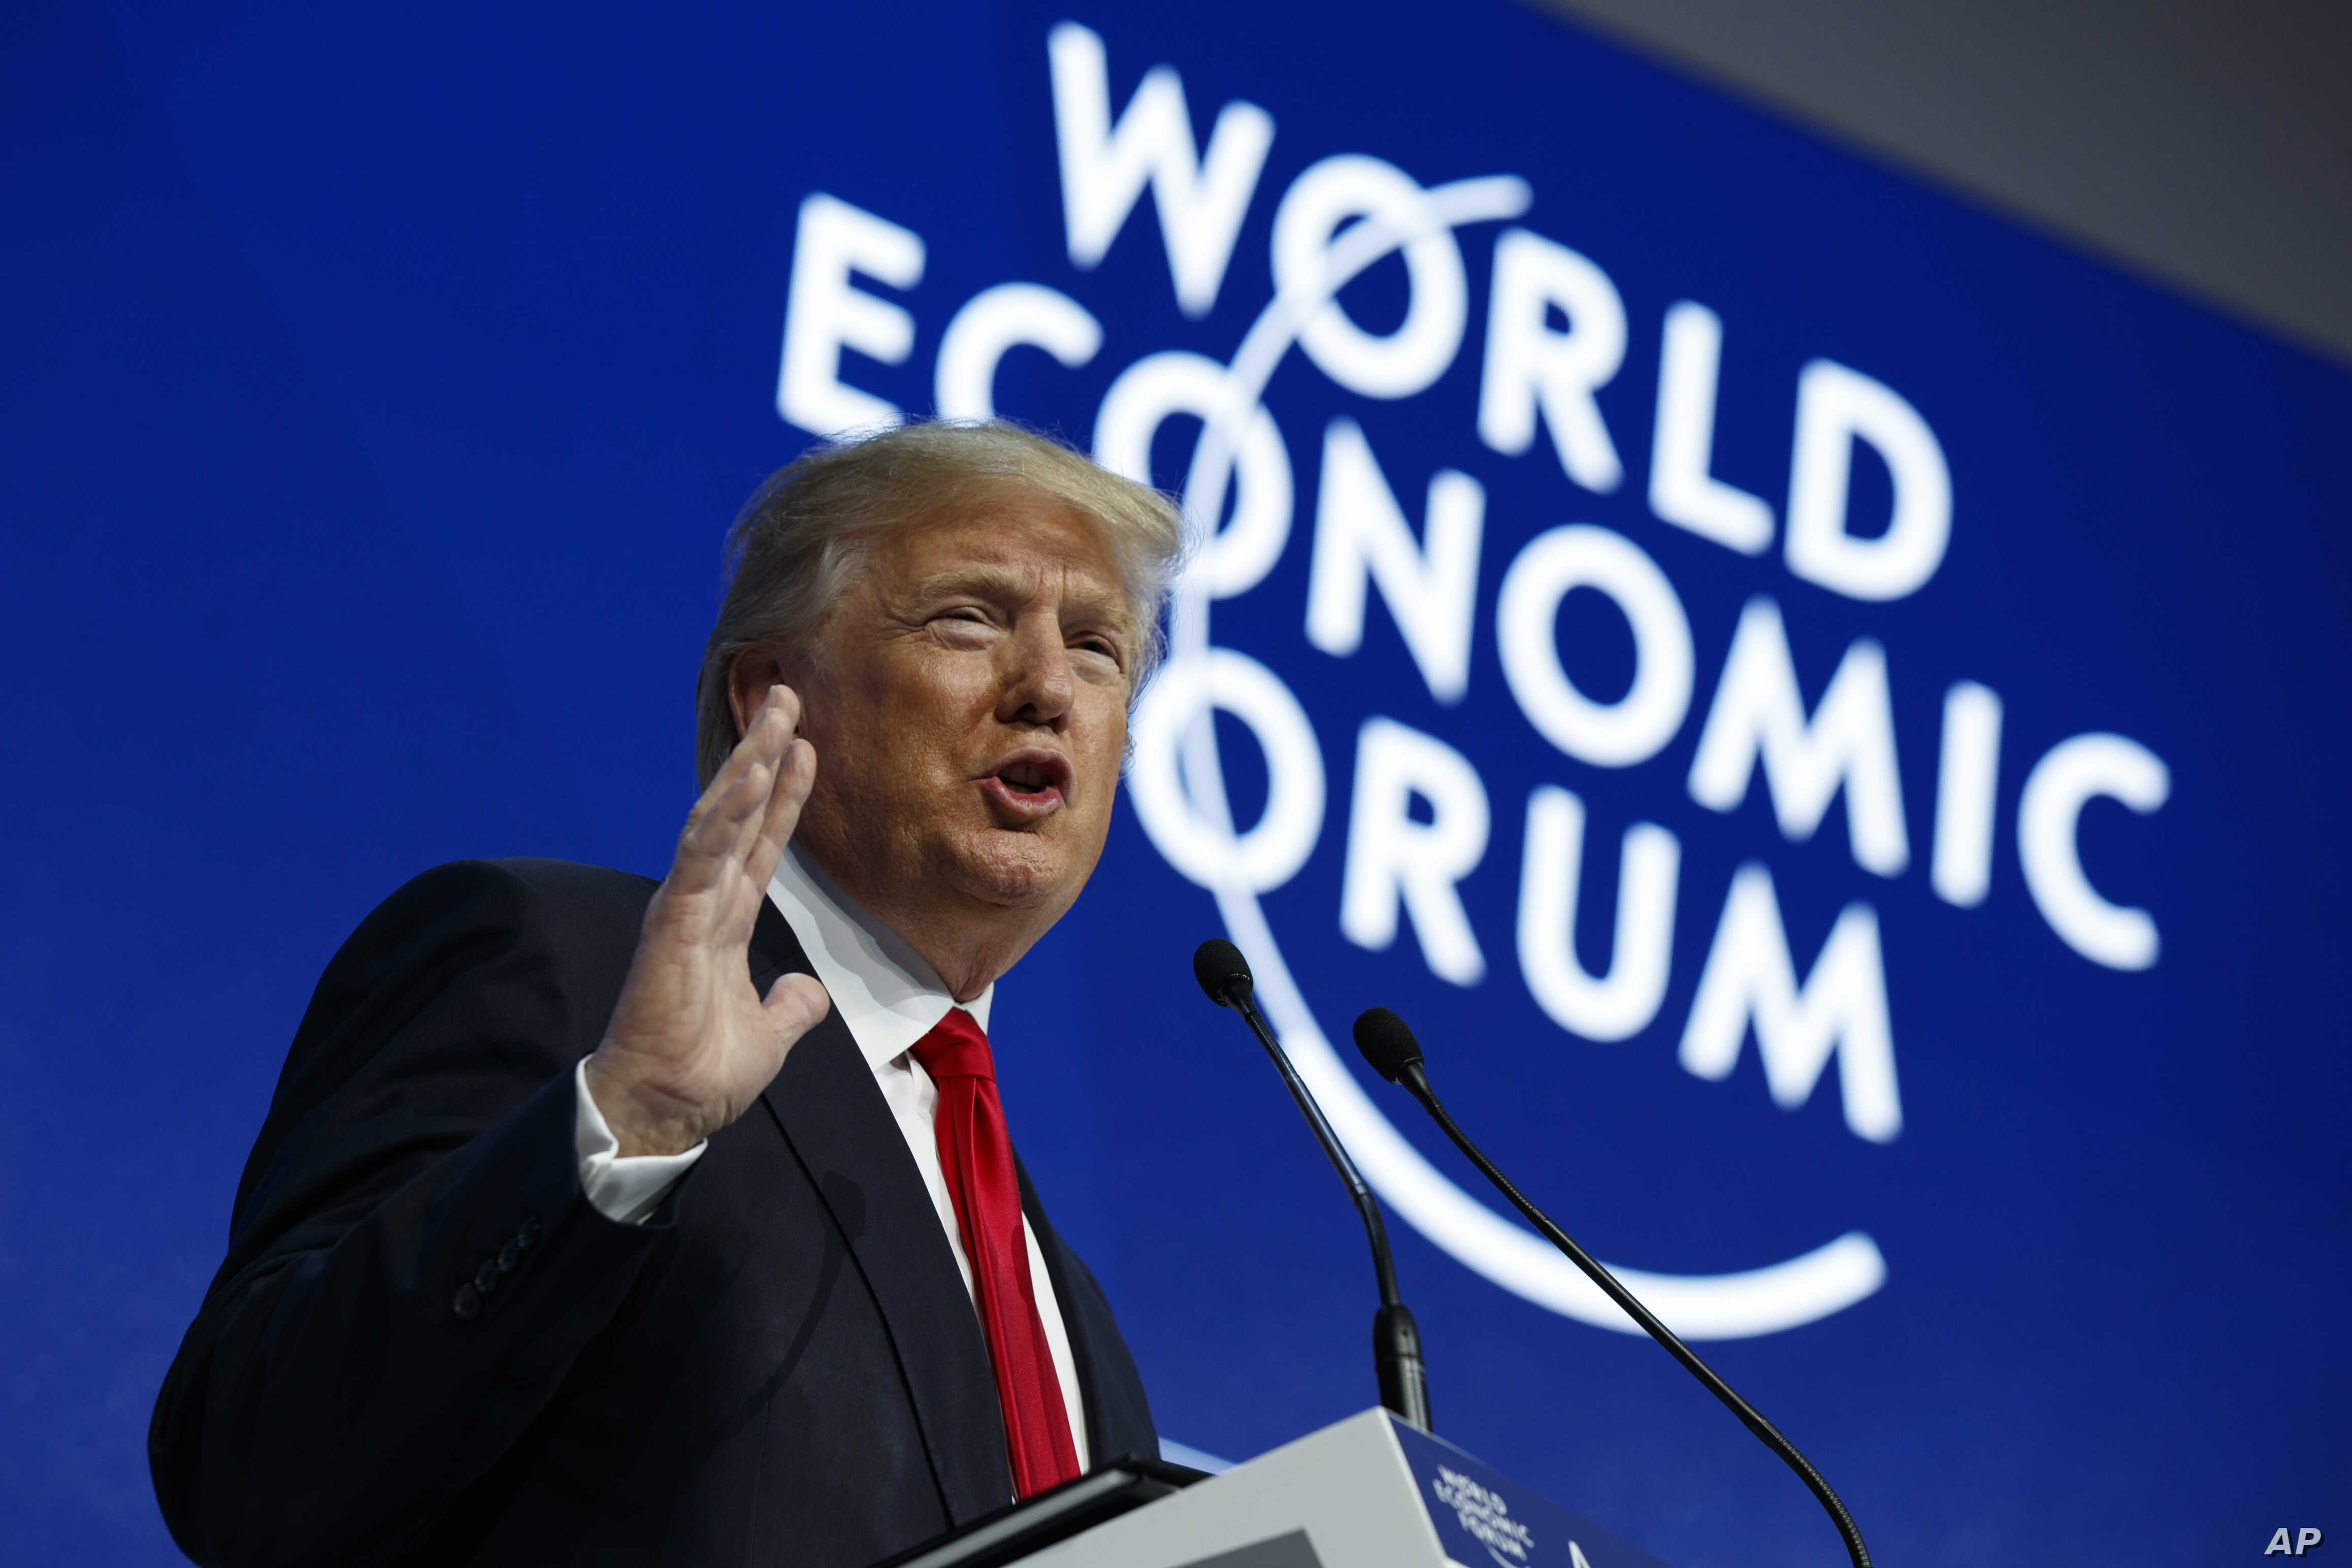 President Donald Trump delivers a speech to the World Economic Forum, Jan. 26, 2018, in Davos, Switzerland.